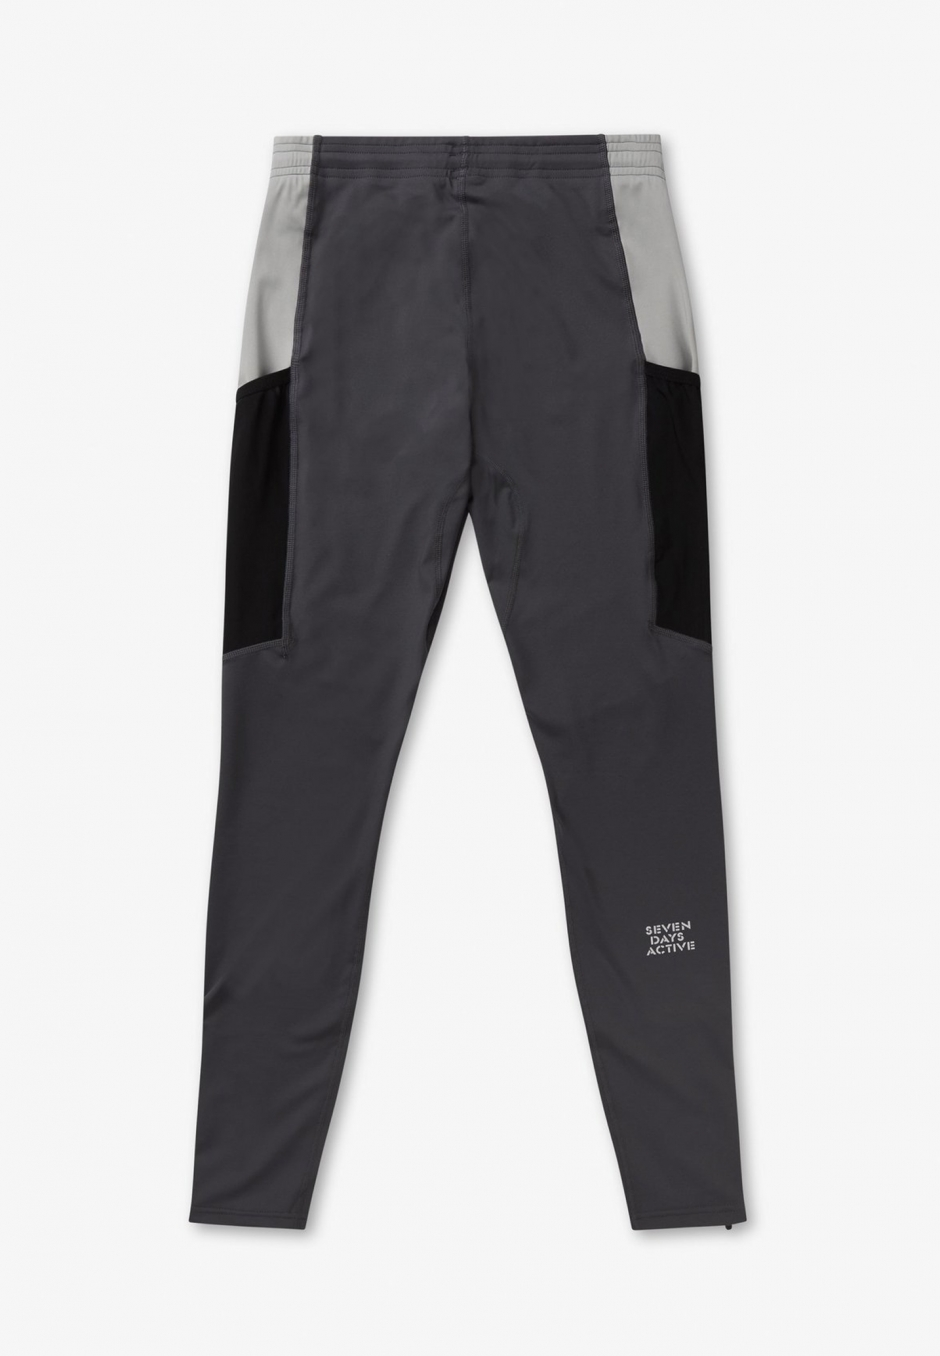 7 Days Active Chief Running Tights